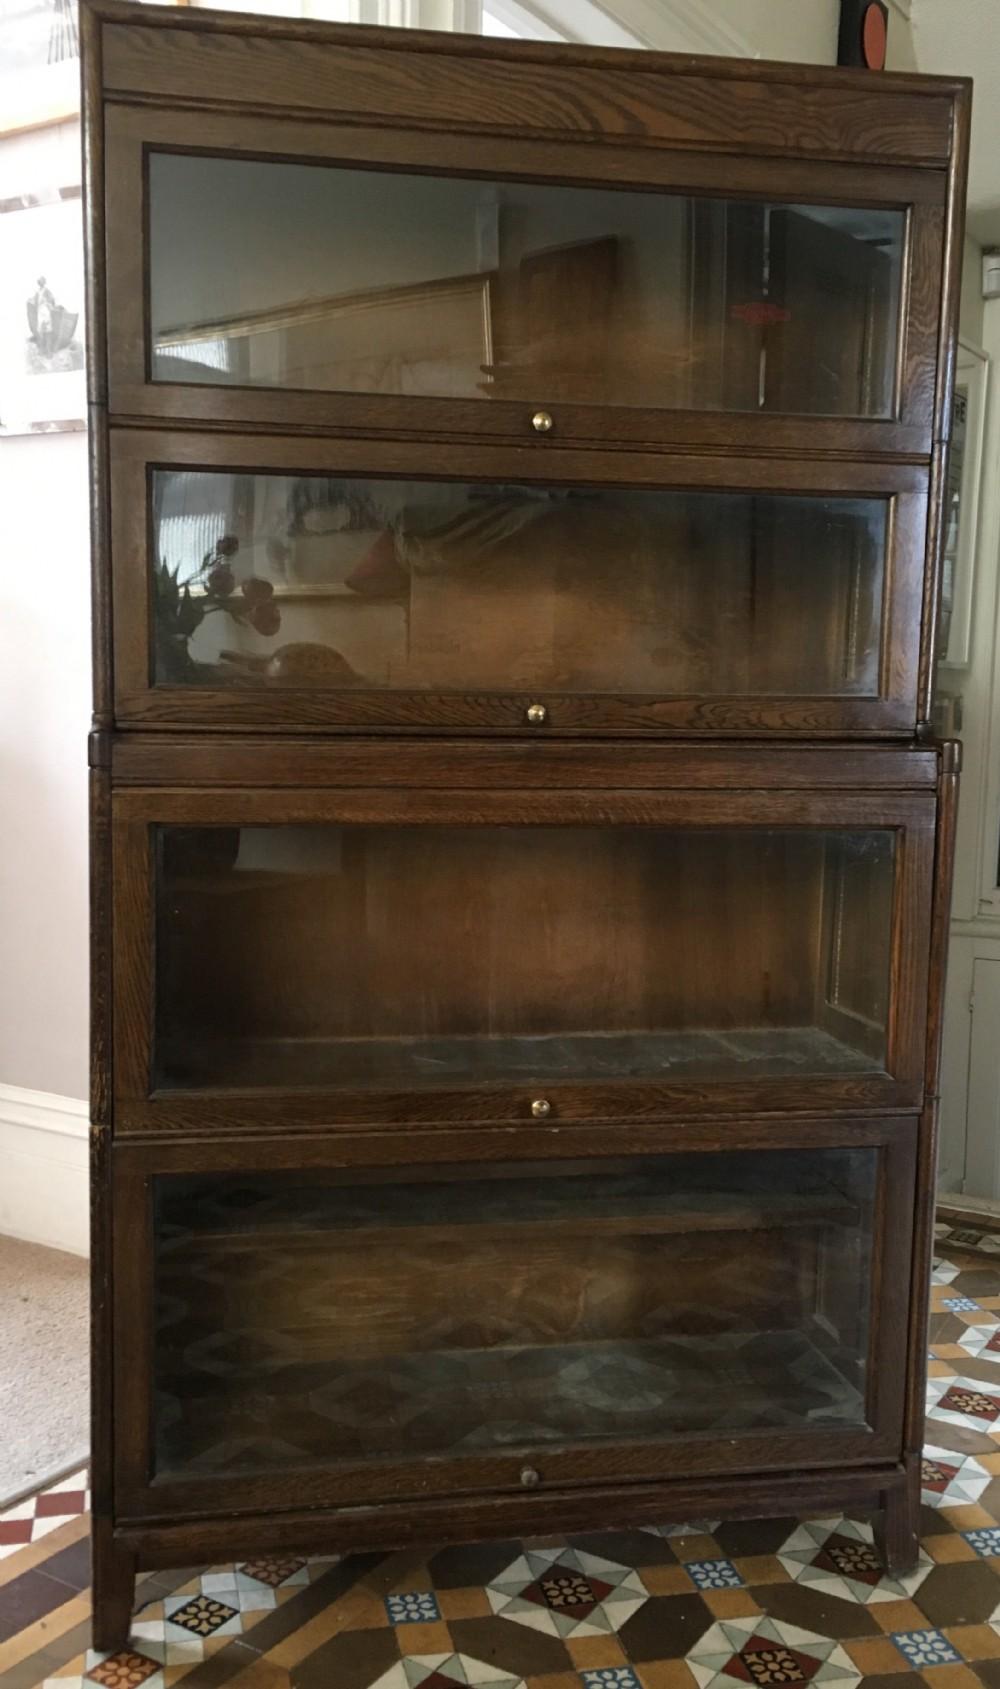 gunn stacking bookcase similar to globe wernicke